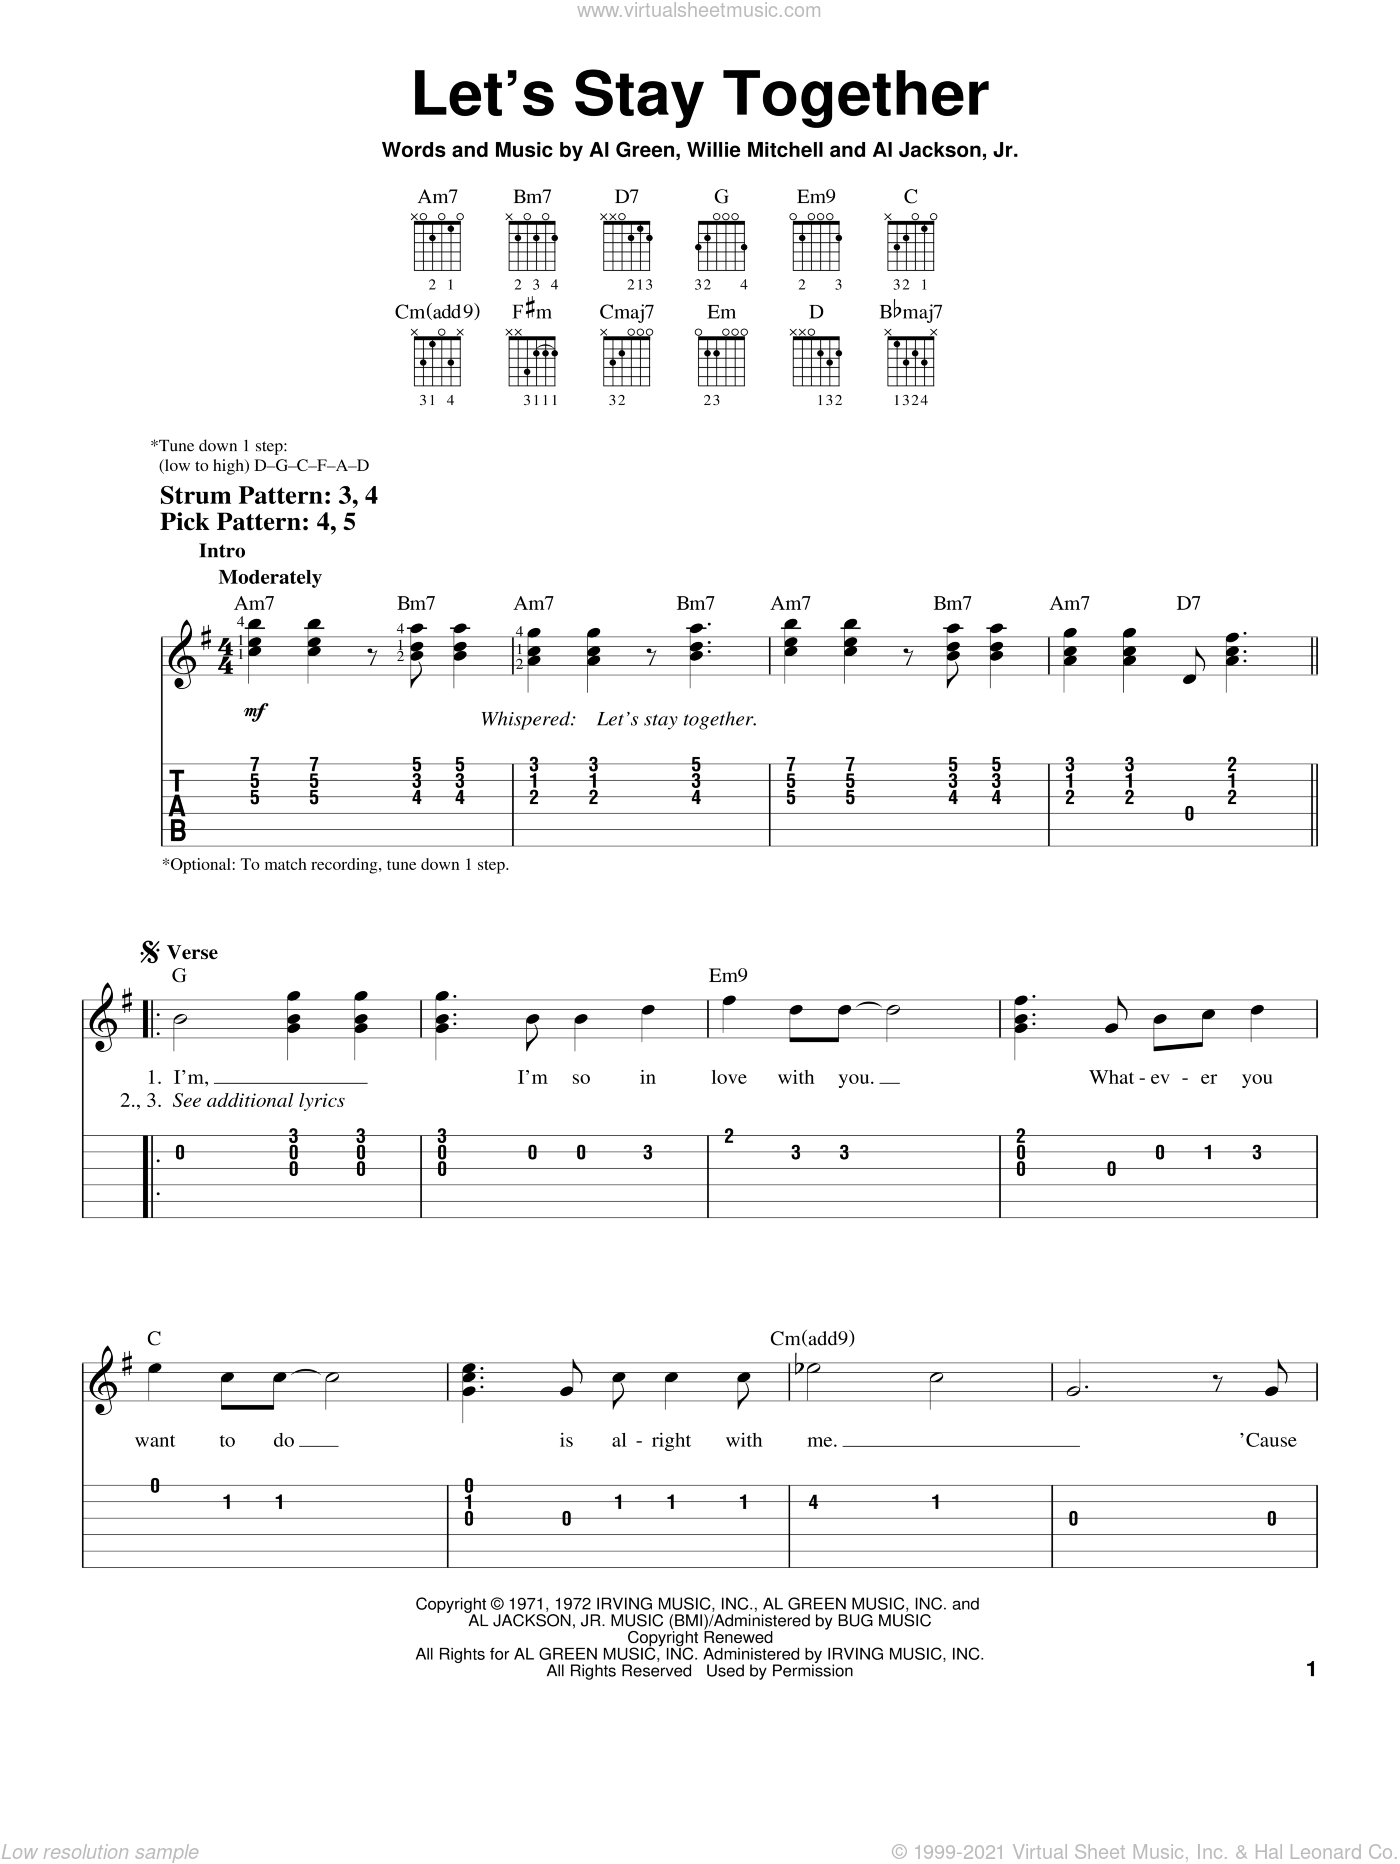 Let's Stay Together sheet music for guitar solo (chords) by Al Green, Al Jackson, Jr. and Willie Mitchell, wedding score, easy guitar (chords)